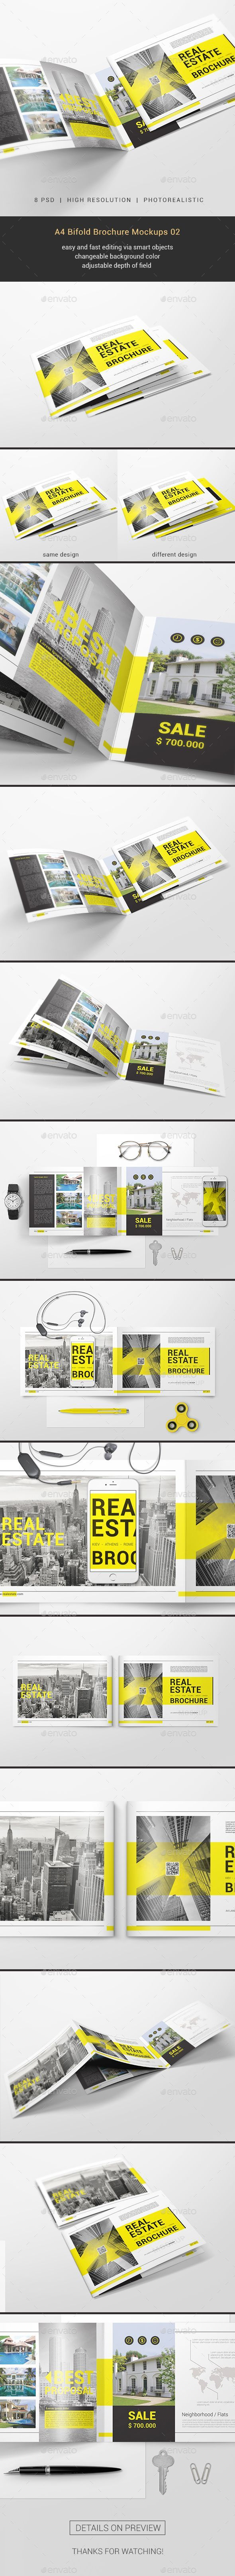 A4 Bifold Brochure Mockups 02 A4 Bifold Brochure Mockups 02 Features: 8 photorealistic styles Page size: 297×210 mm High Resolution. 3000×2000 pixel size, 300dpi Easy and fast editing via smart objects Changeable background color Adjustable depth of field Organized layers and folders